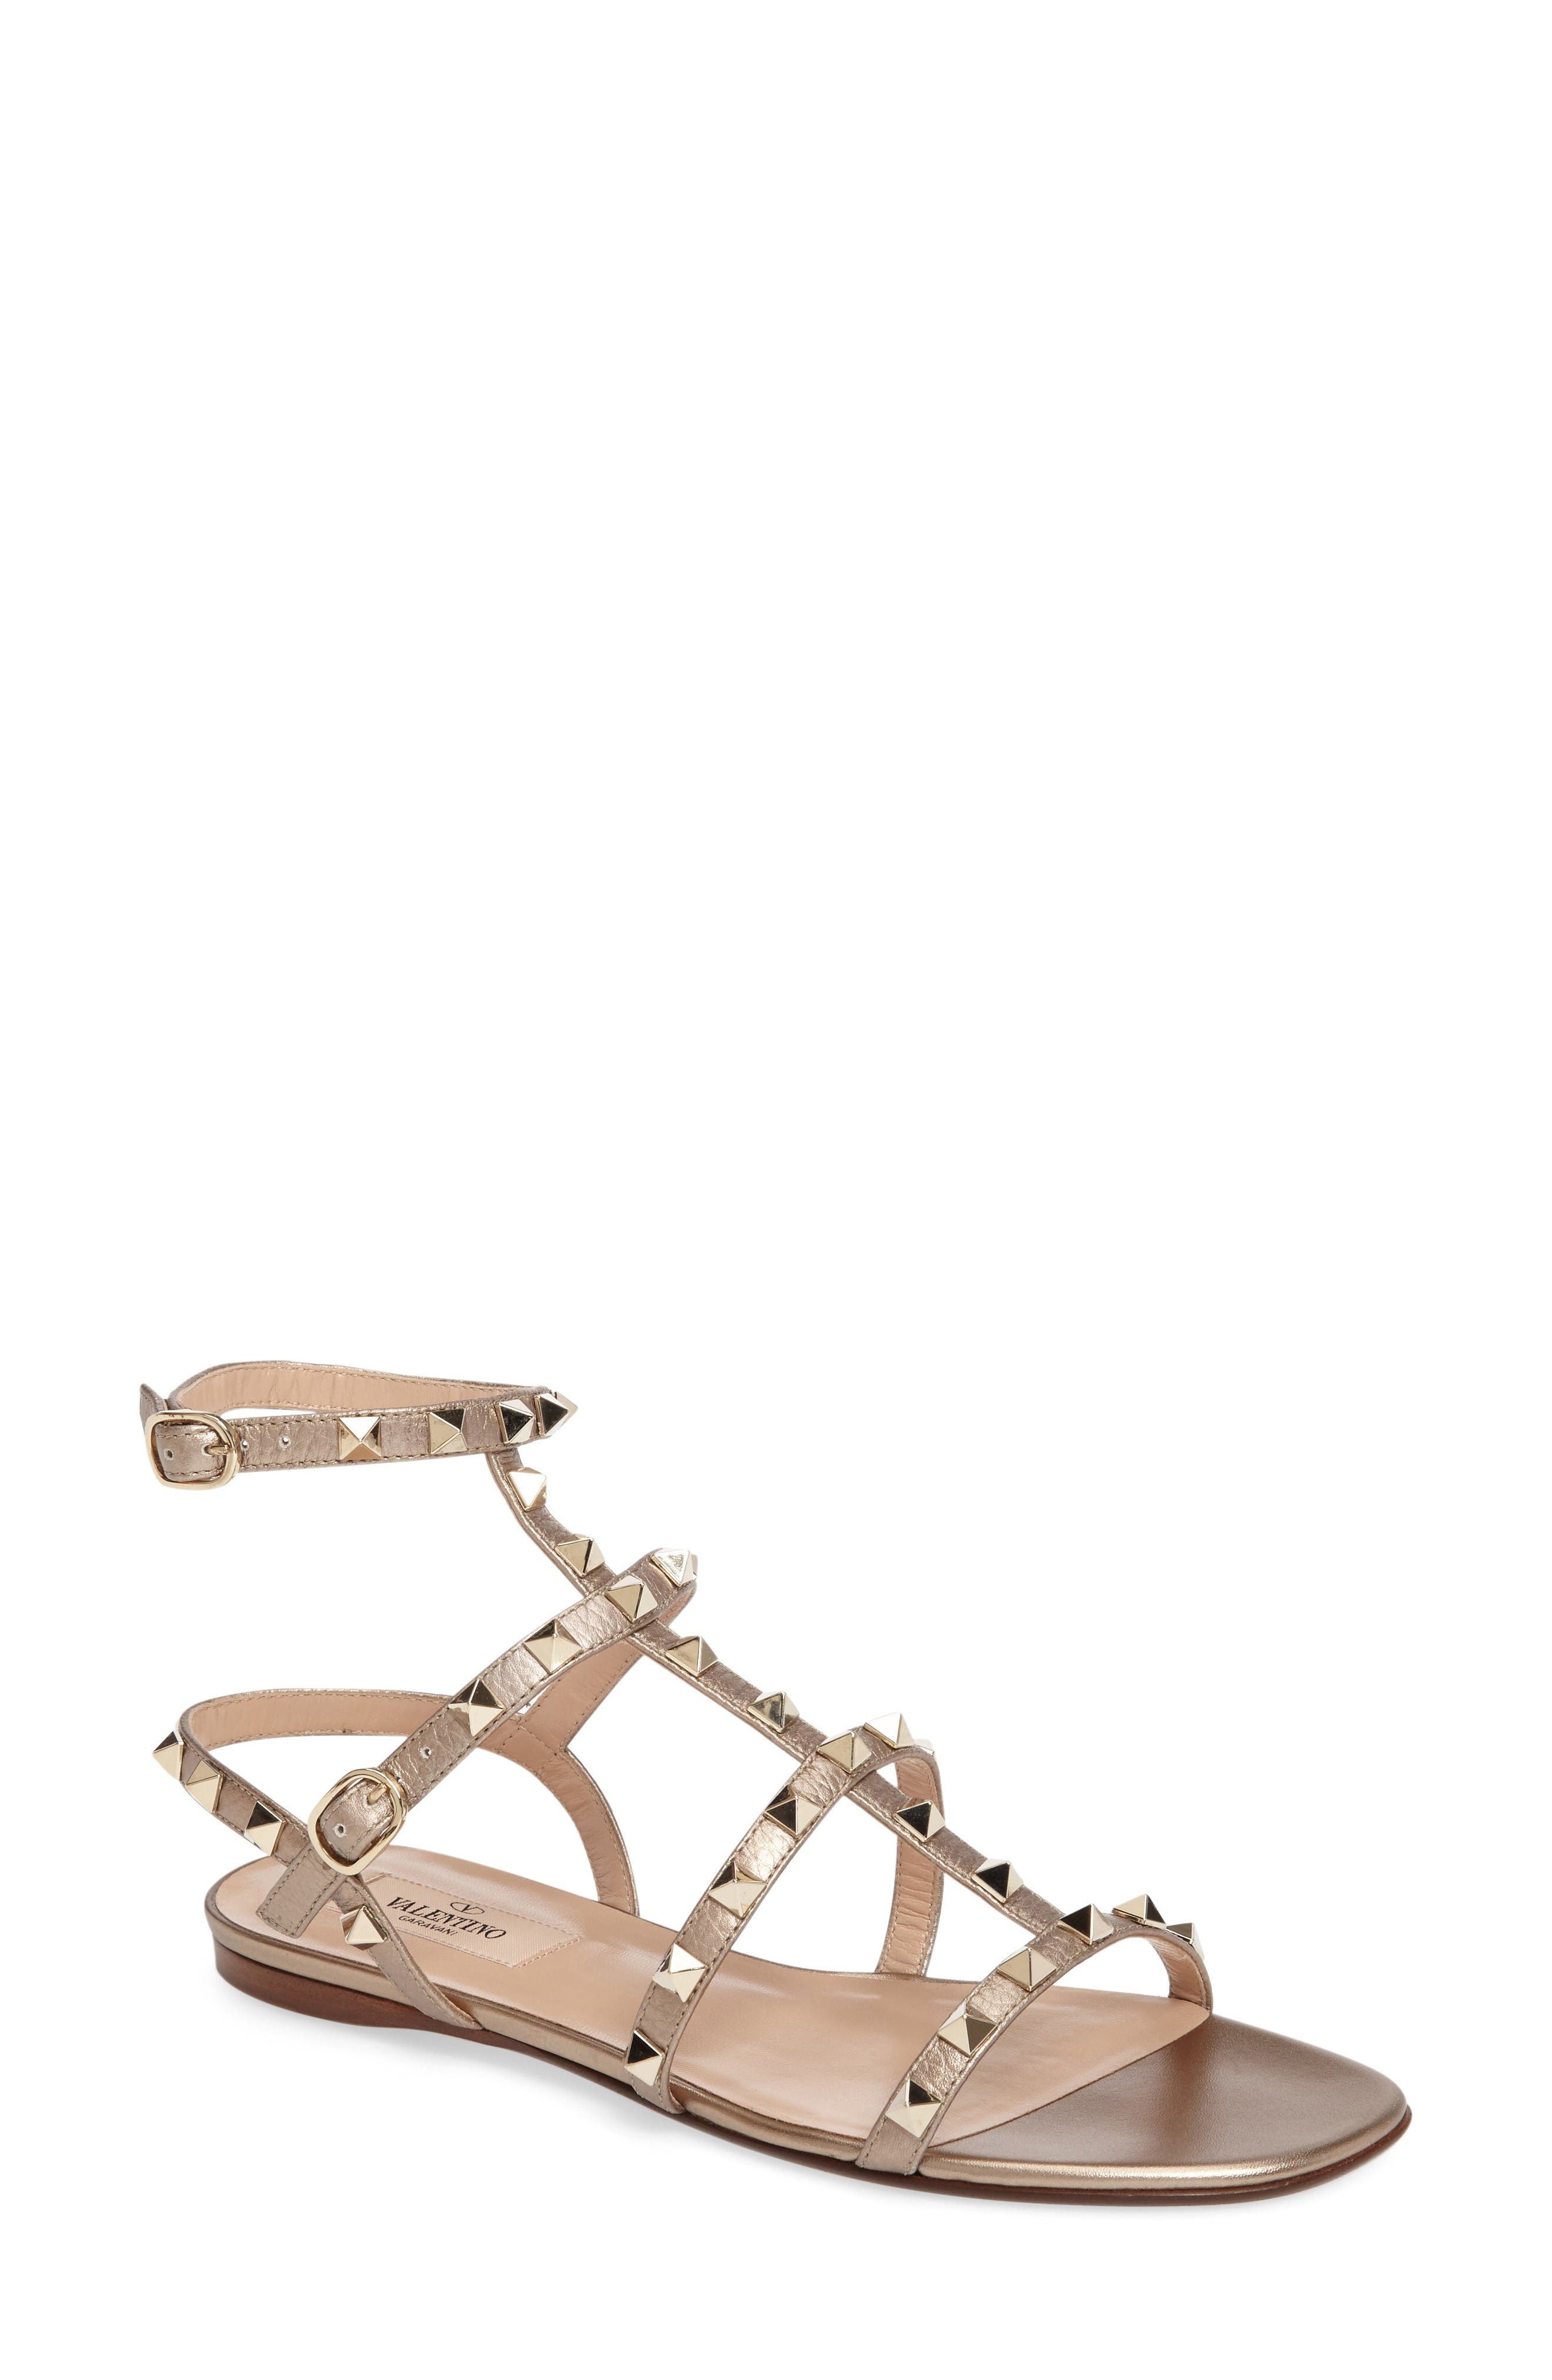 Alternate Image 1 Selected - Valentino 'Rockstud' Gladiator Sandal (Women)